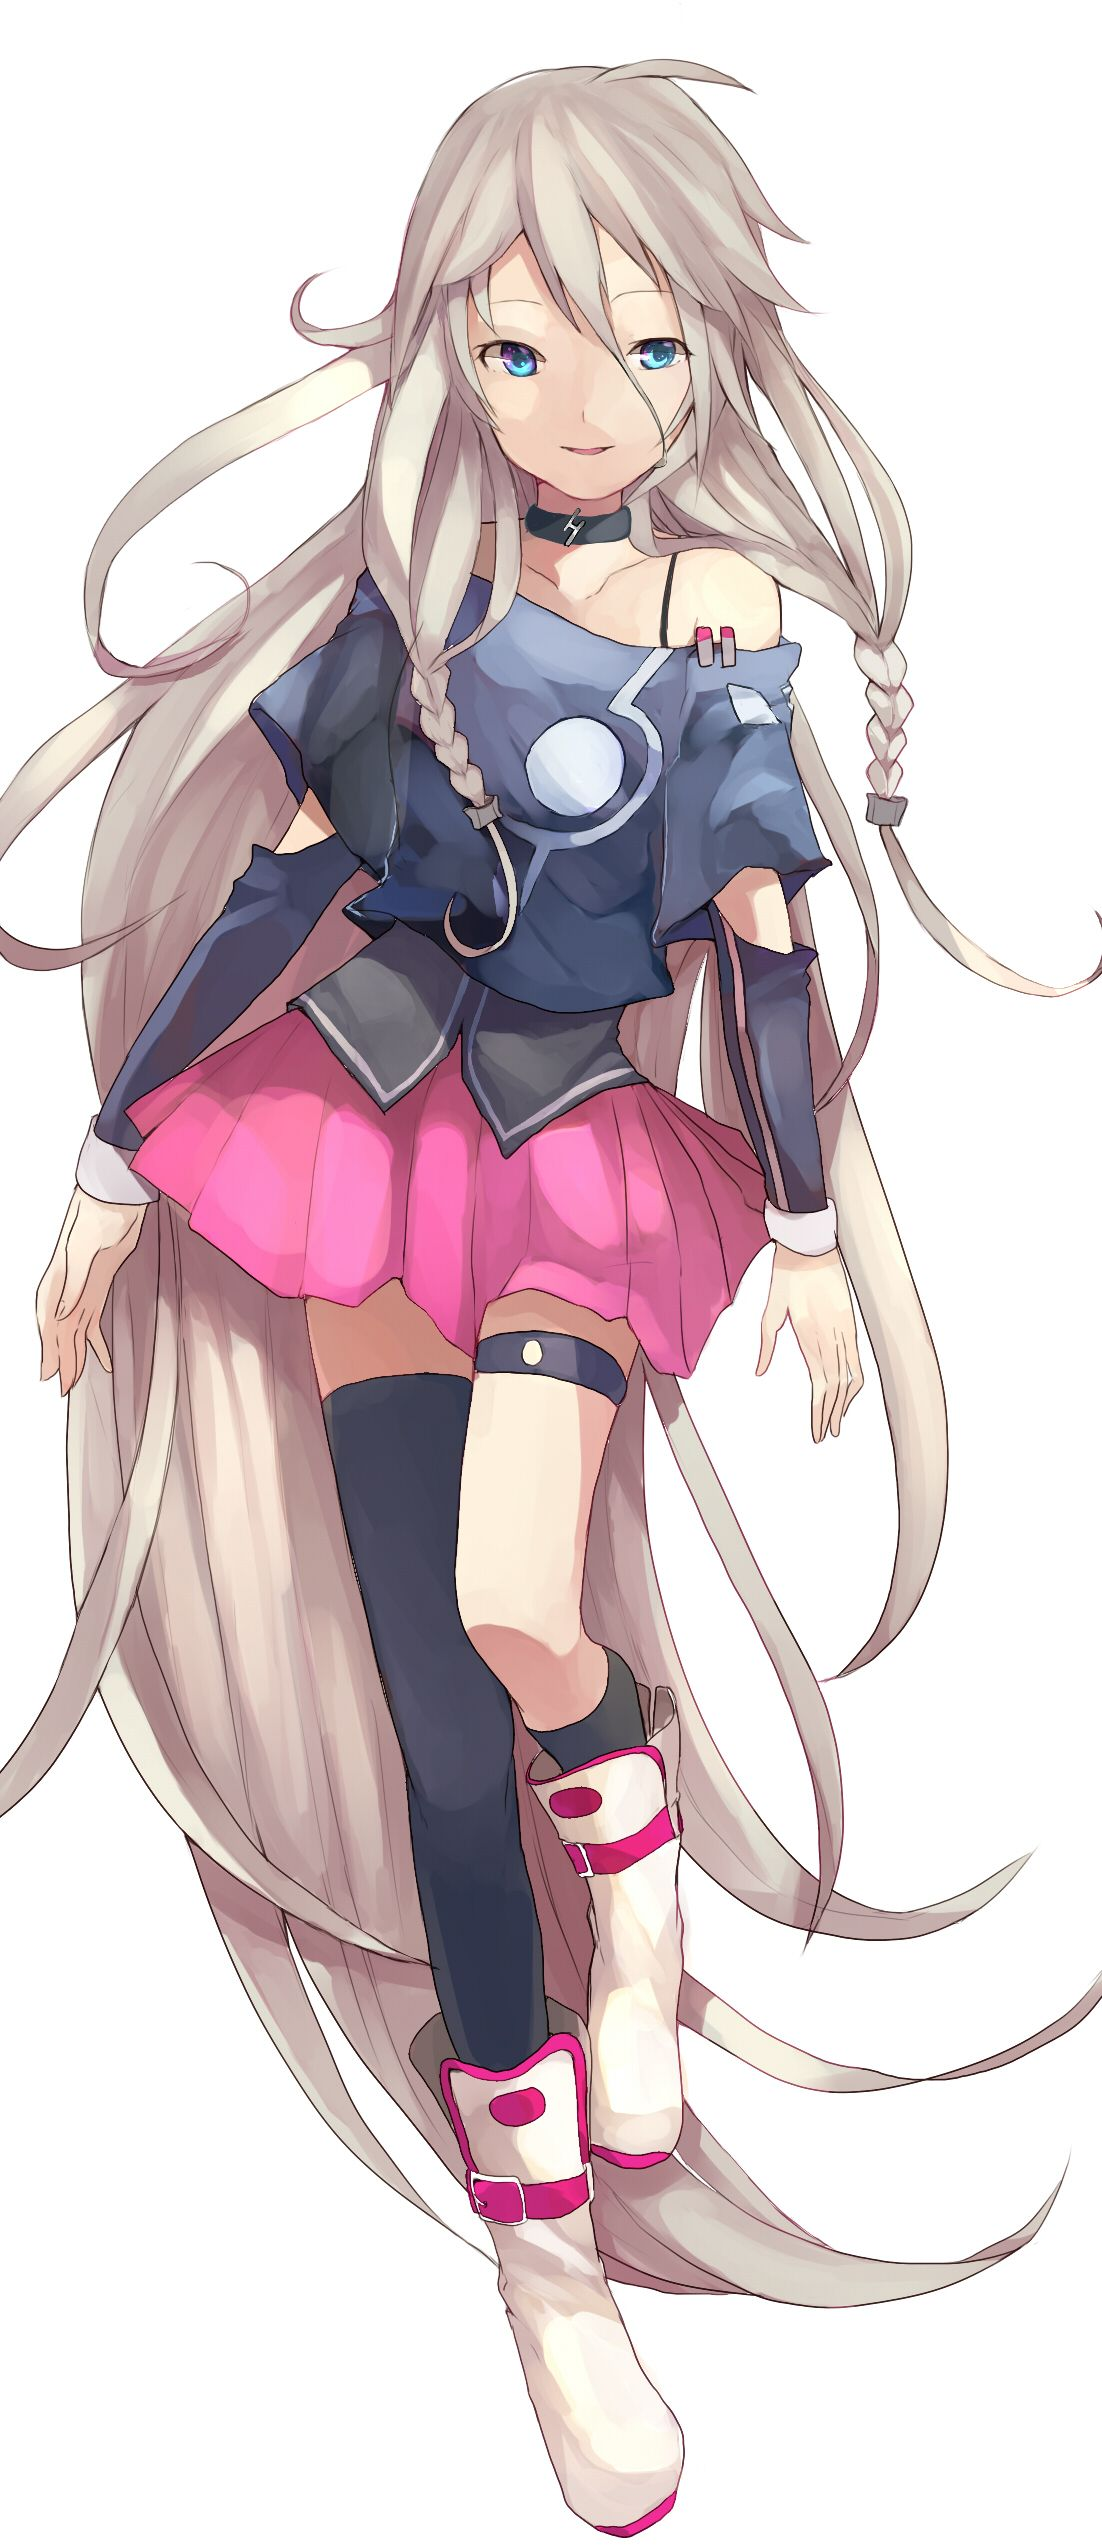 IA, she is the most popular Vocaloid3. Her voice provider